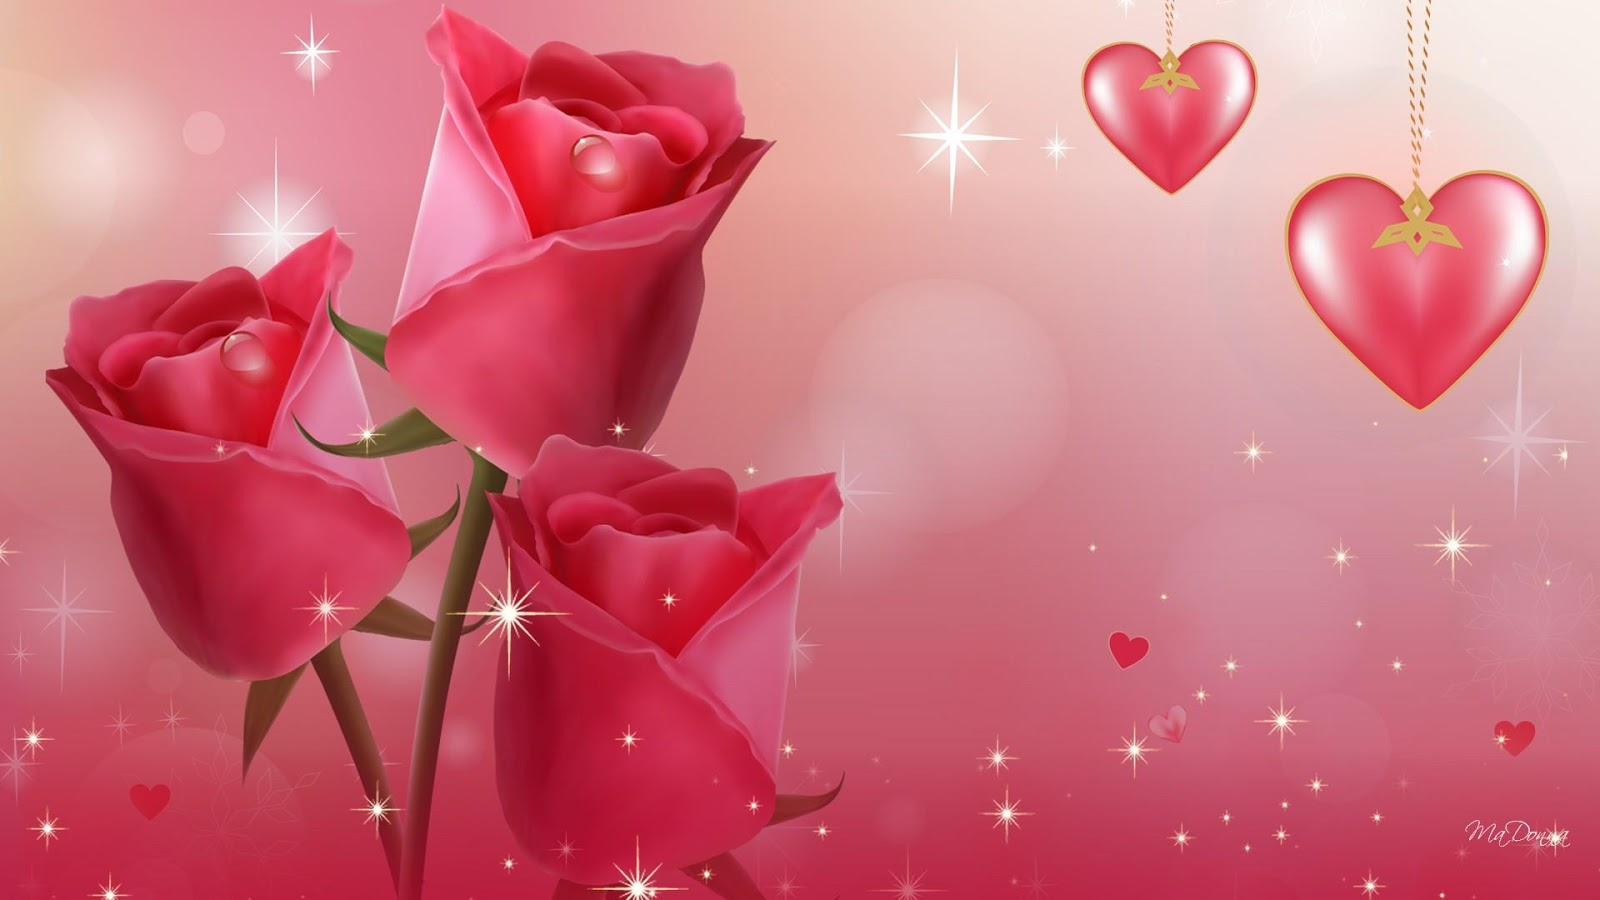 Best romantic valentines day flowers 2017 images collection animated beautiful valentines day flowers wallpapers izmirmasajfo Images